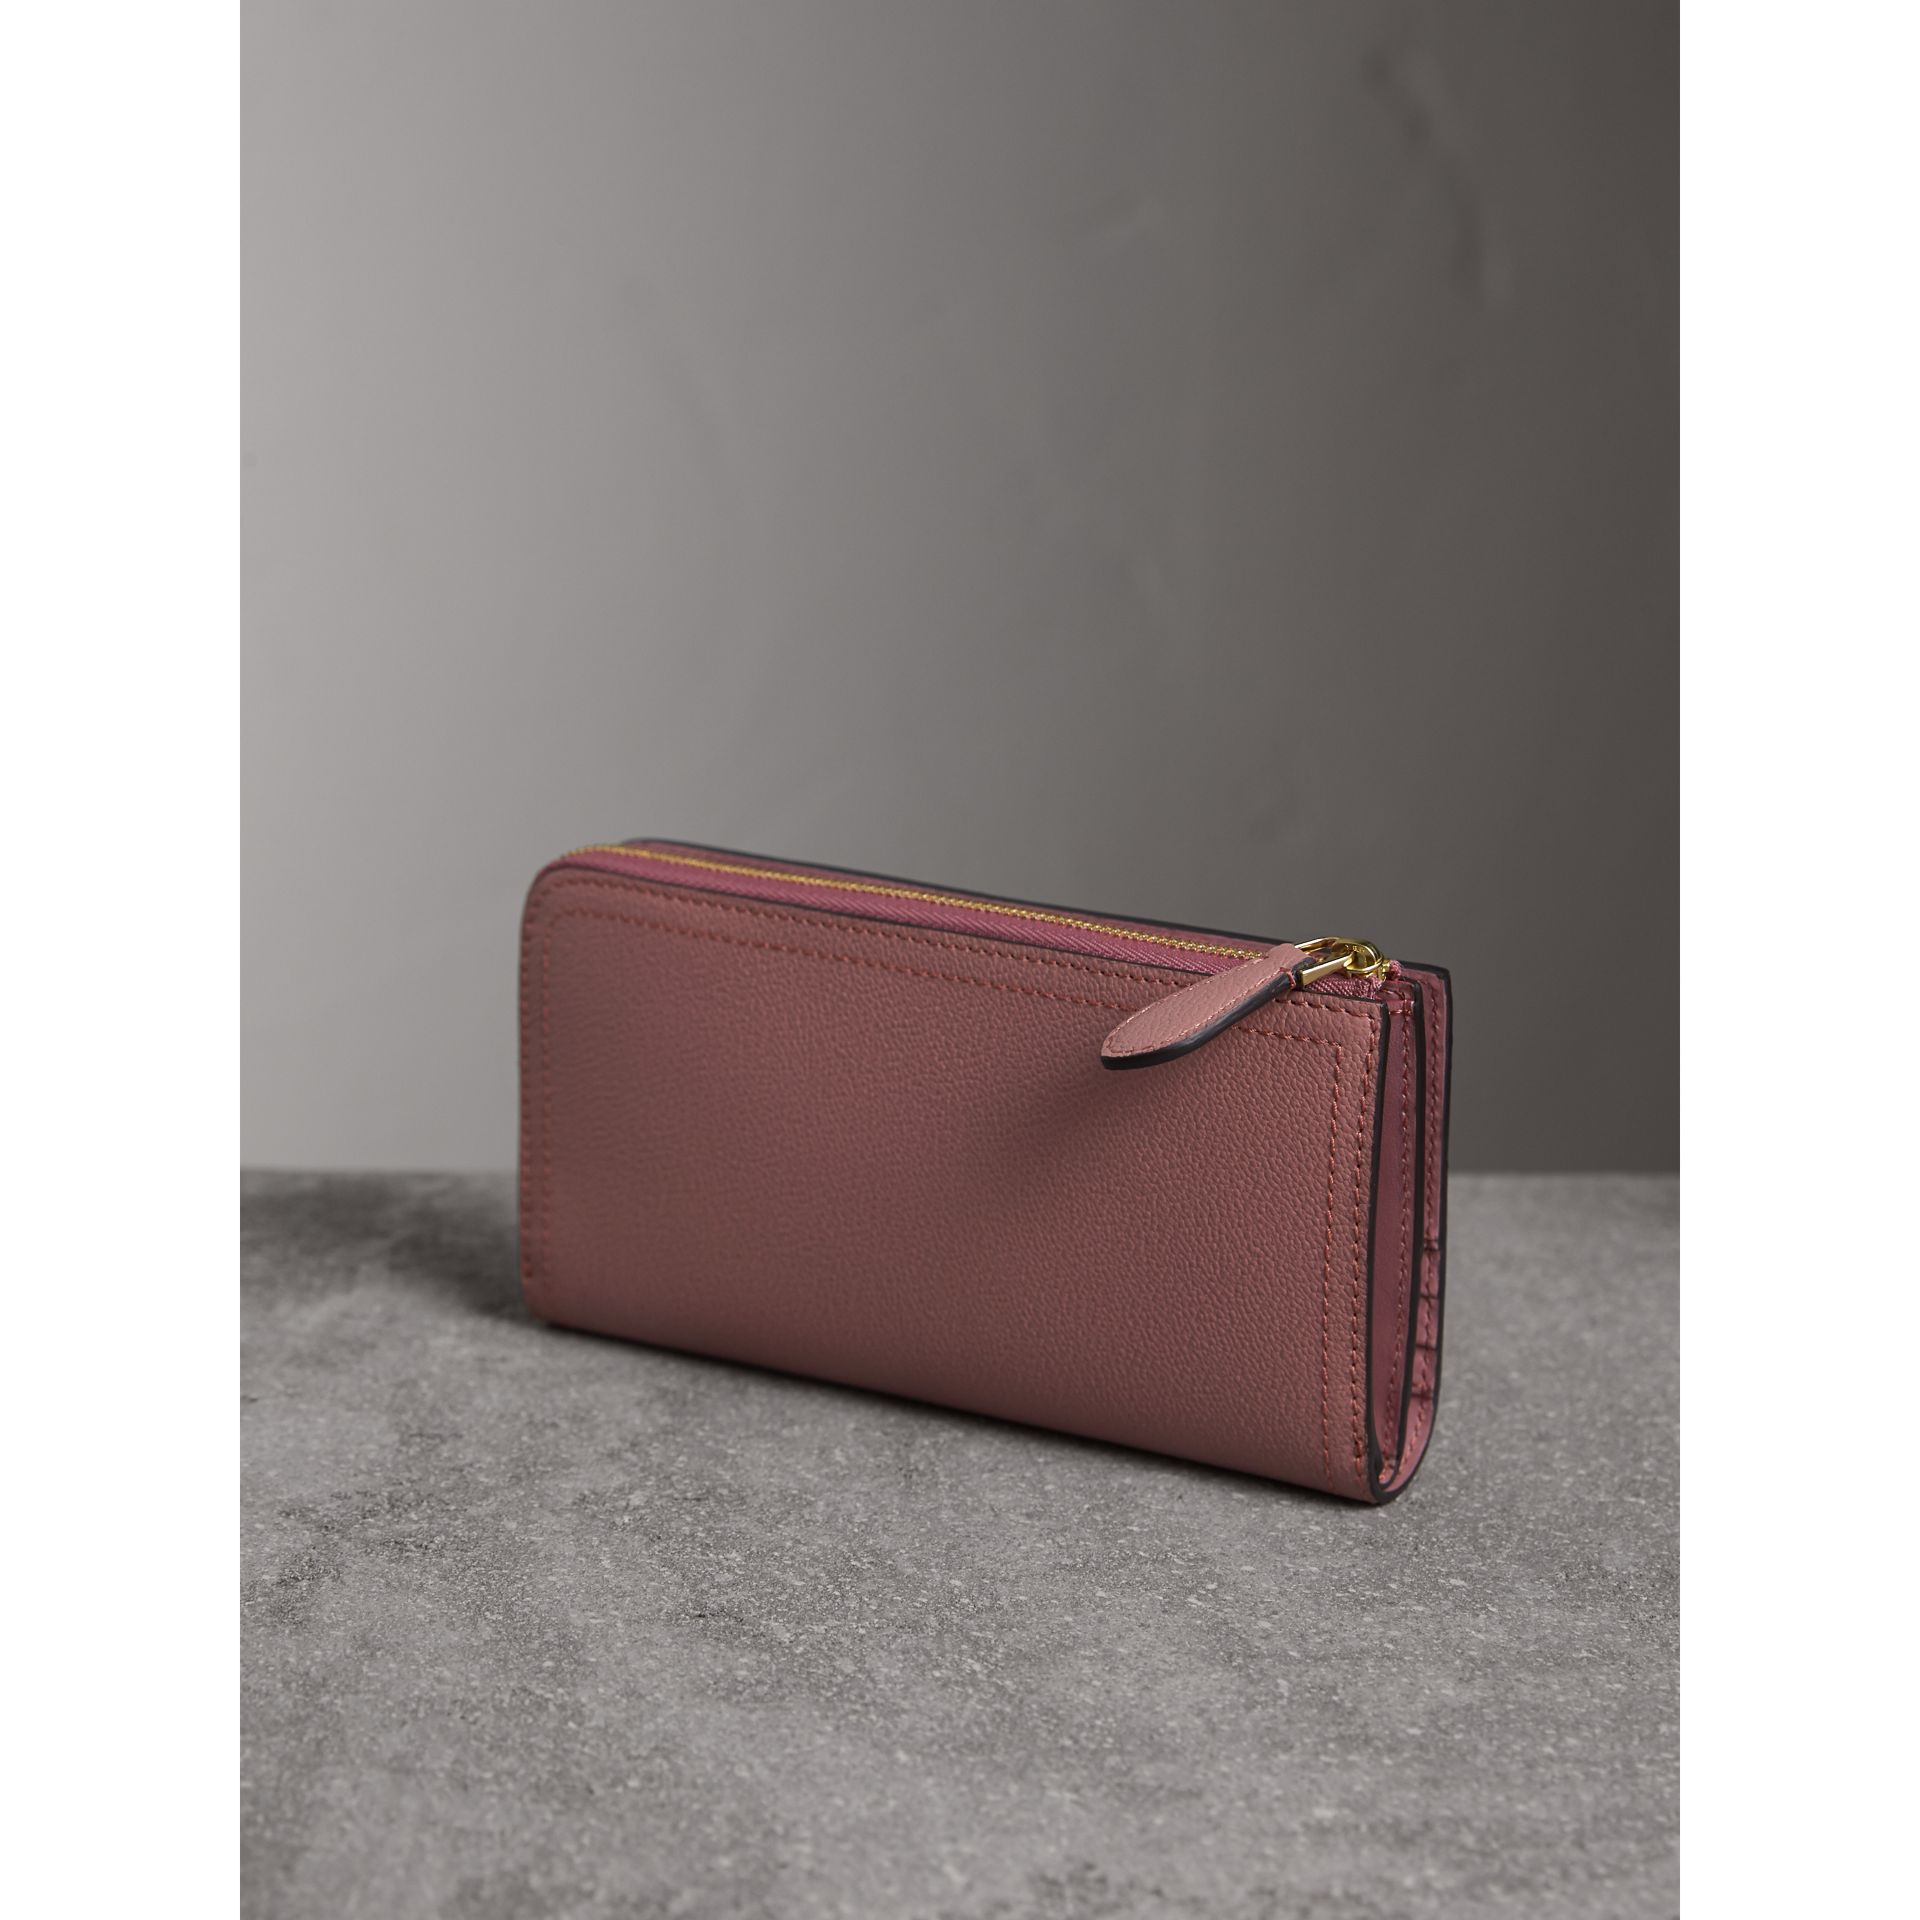 Grainy Leather Ziparound Wallet in Dusty Pink - Women | Burberry United States - gallery image 3